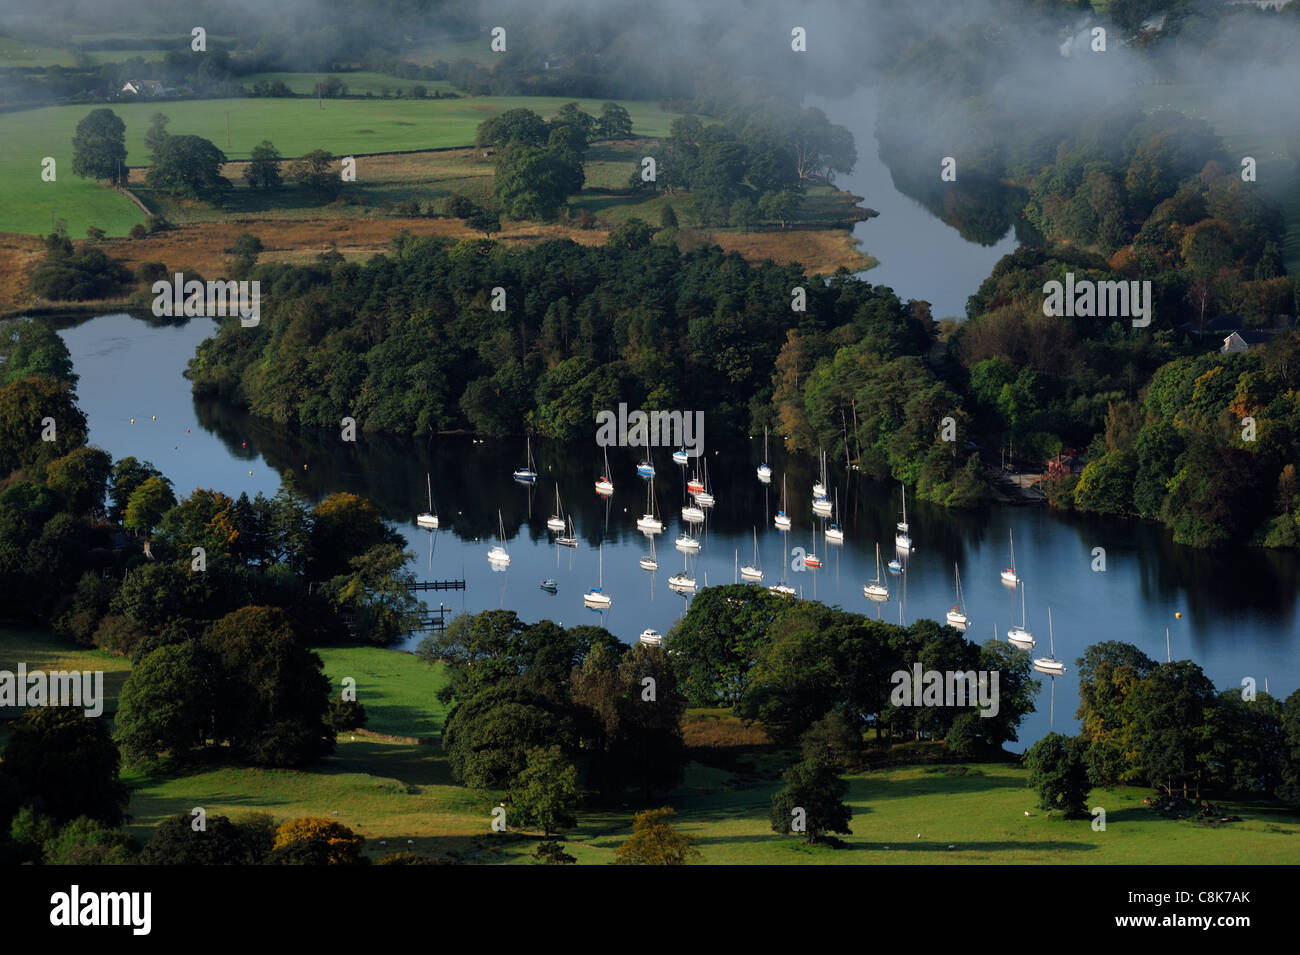 Boats at the south end of Lake WIndermere - Stock Image